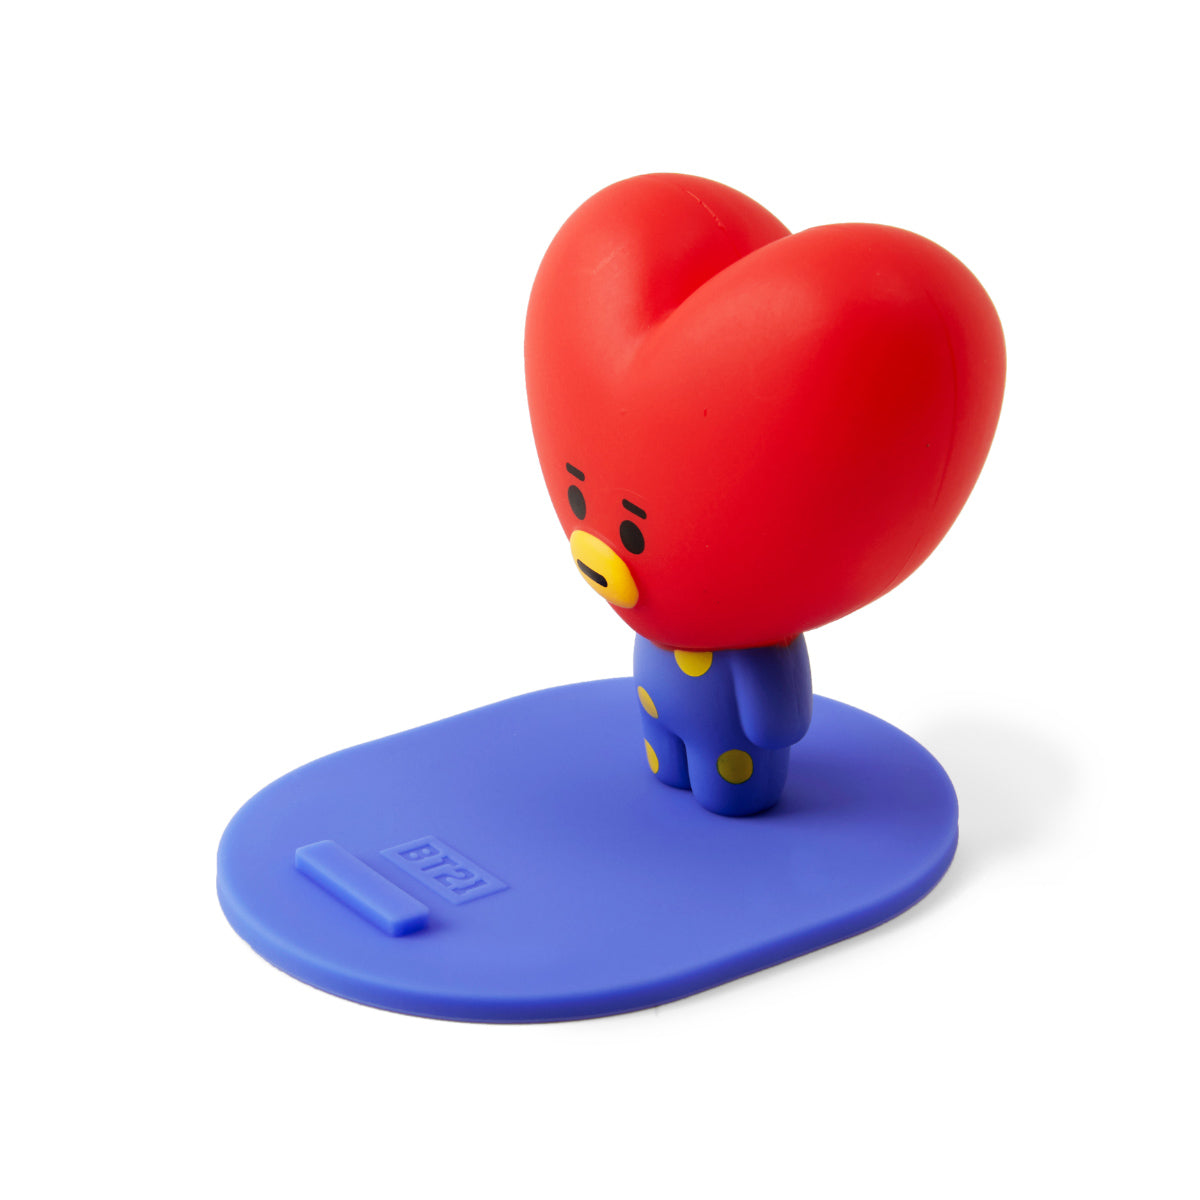 BT21 TATA Figure Phone Stand 2